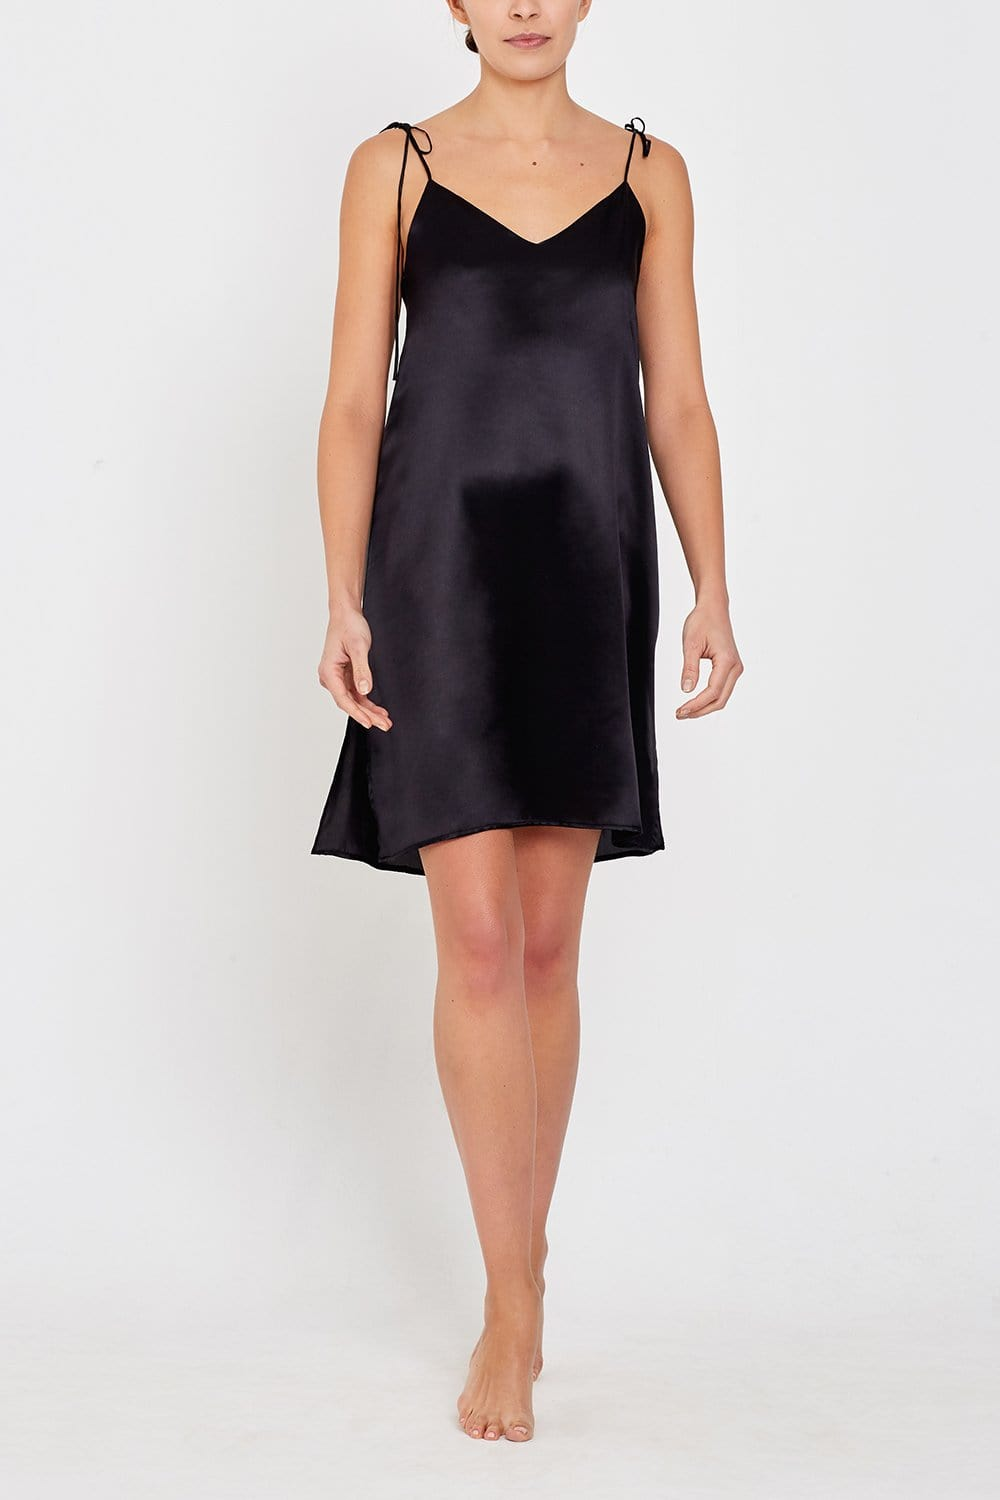 Lucia Short Black Silk Nightdress